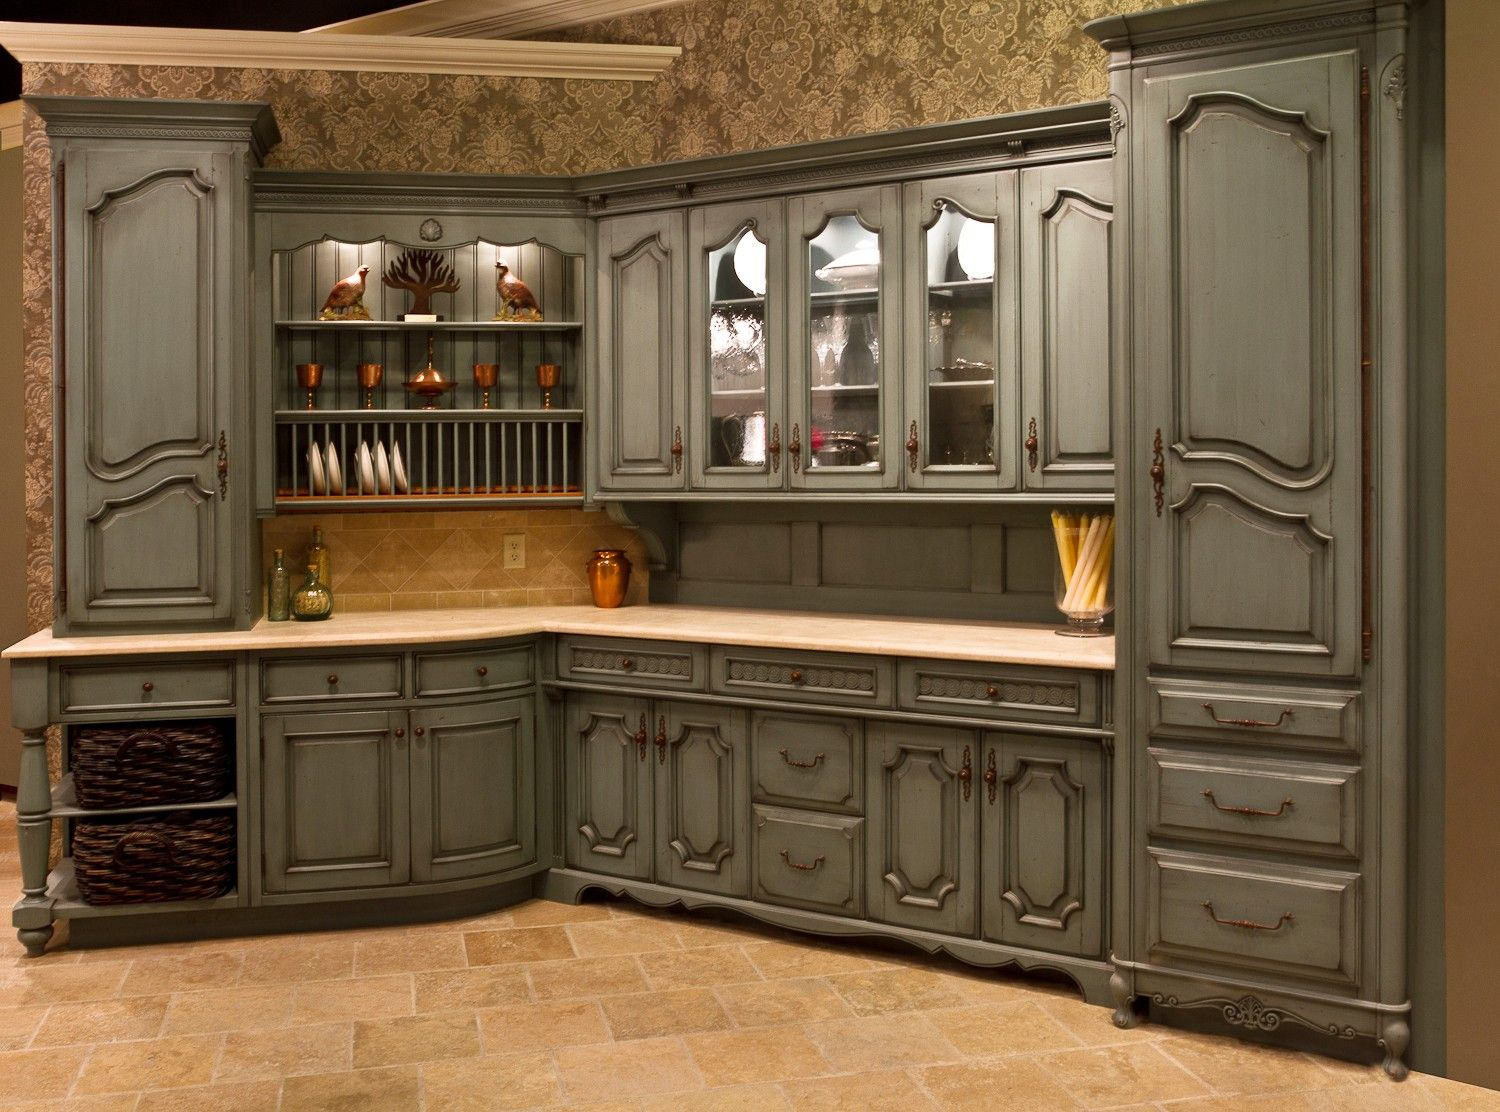 Outstanding French Chateau Kitchen Wallpaper With Gray Wooden Kitchen  Cabinet Set Mounted To The Wall Be Equipped Shelves For Kitchen Appliances  And Kitchen ...